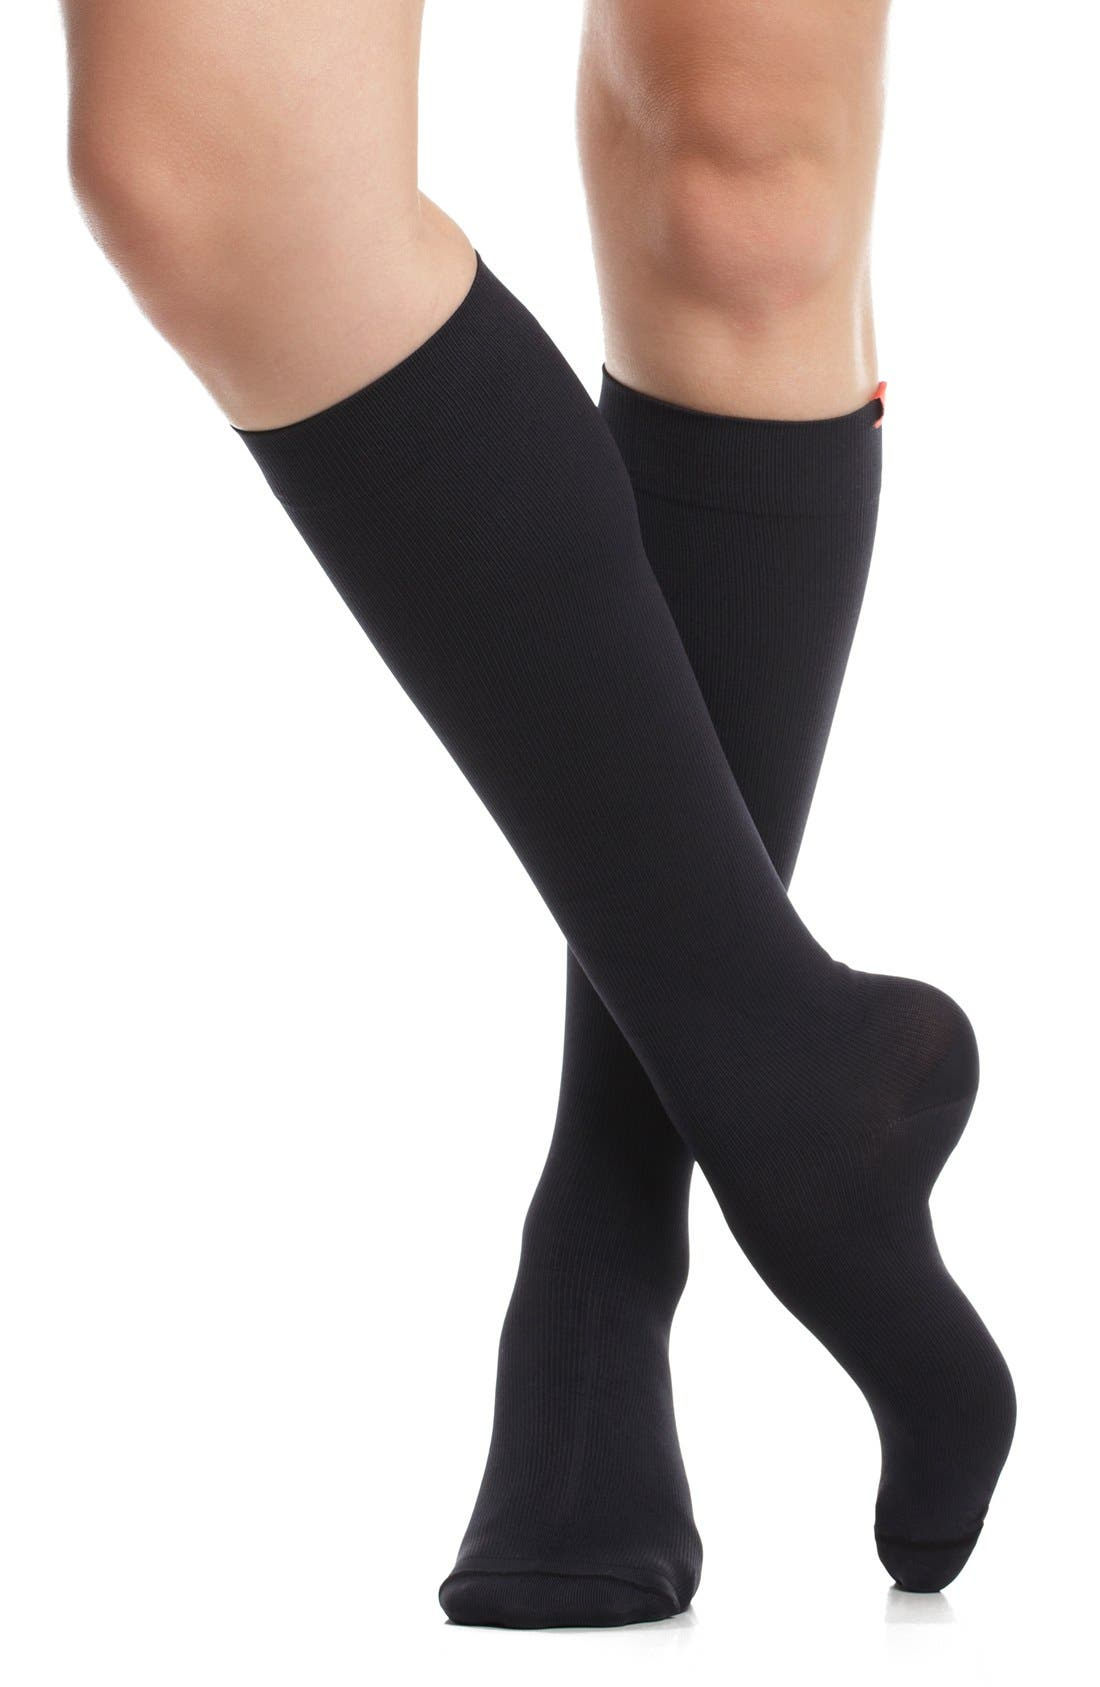 Alternate Image 2  - VIM & VIGR Solid Graduated Compression Trouser Socks